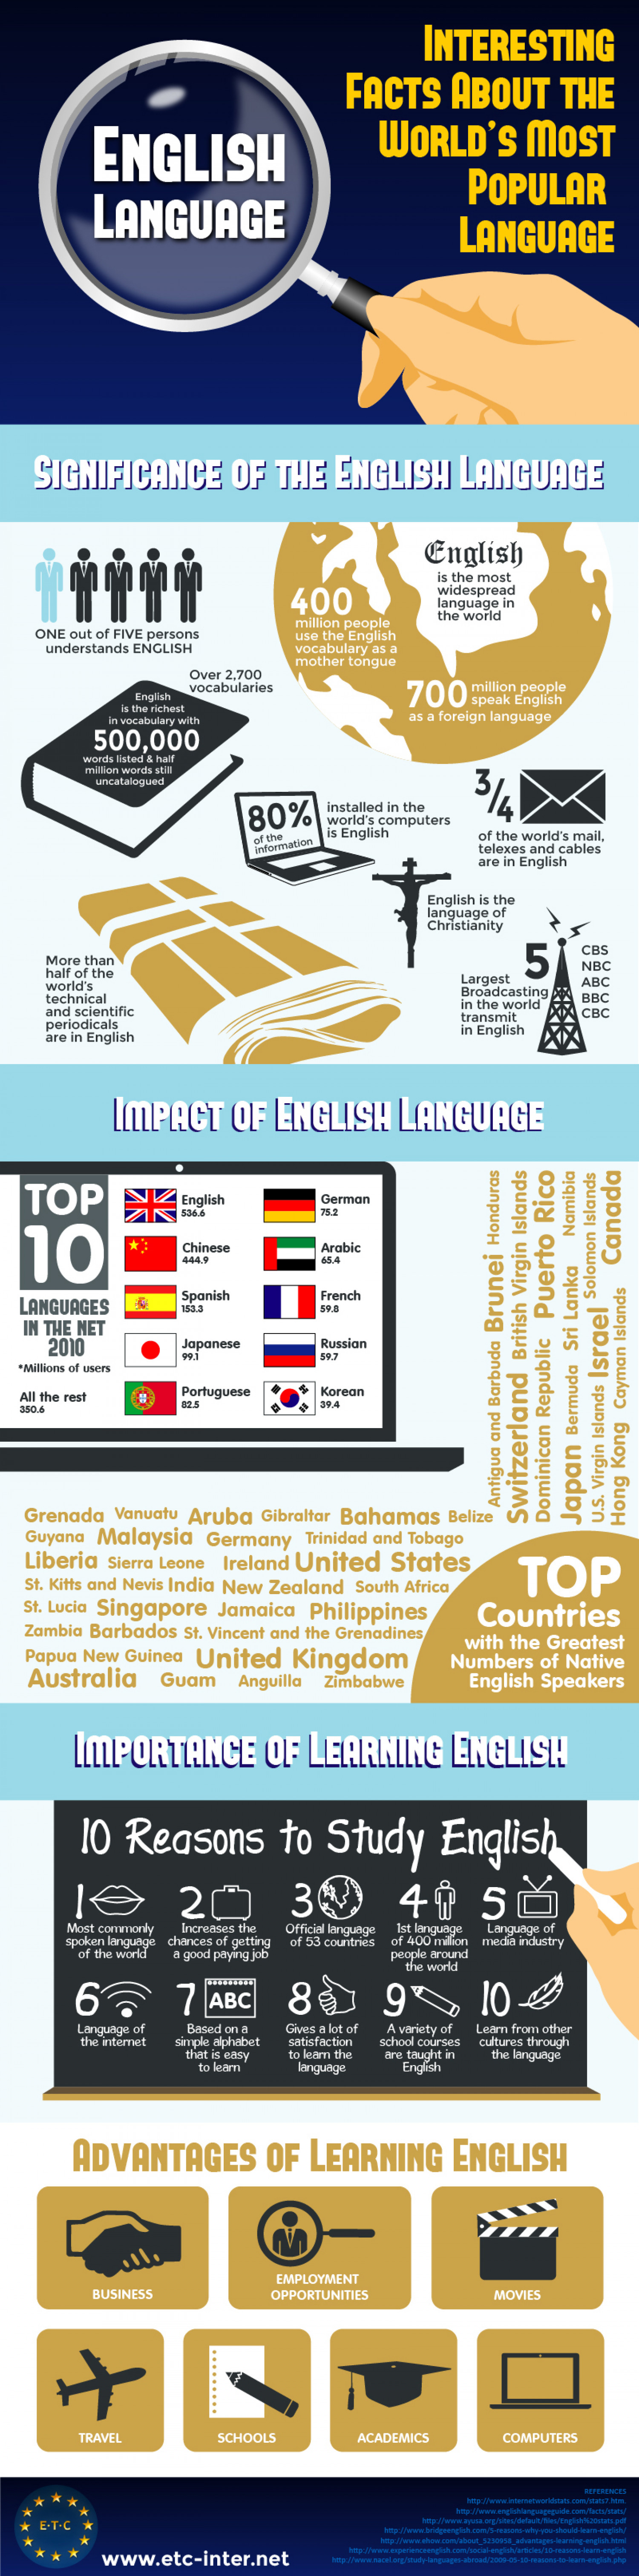 English Language - Interesting Facts about the World's Most Popular Language Infographic